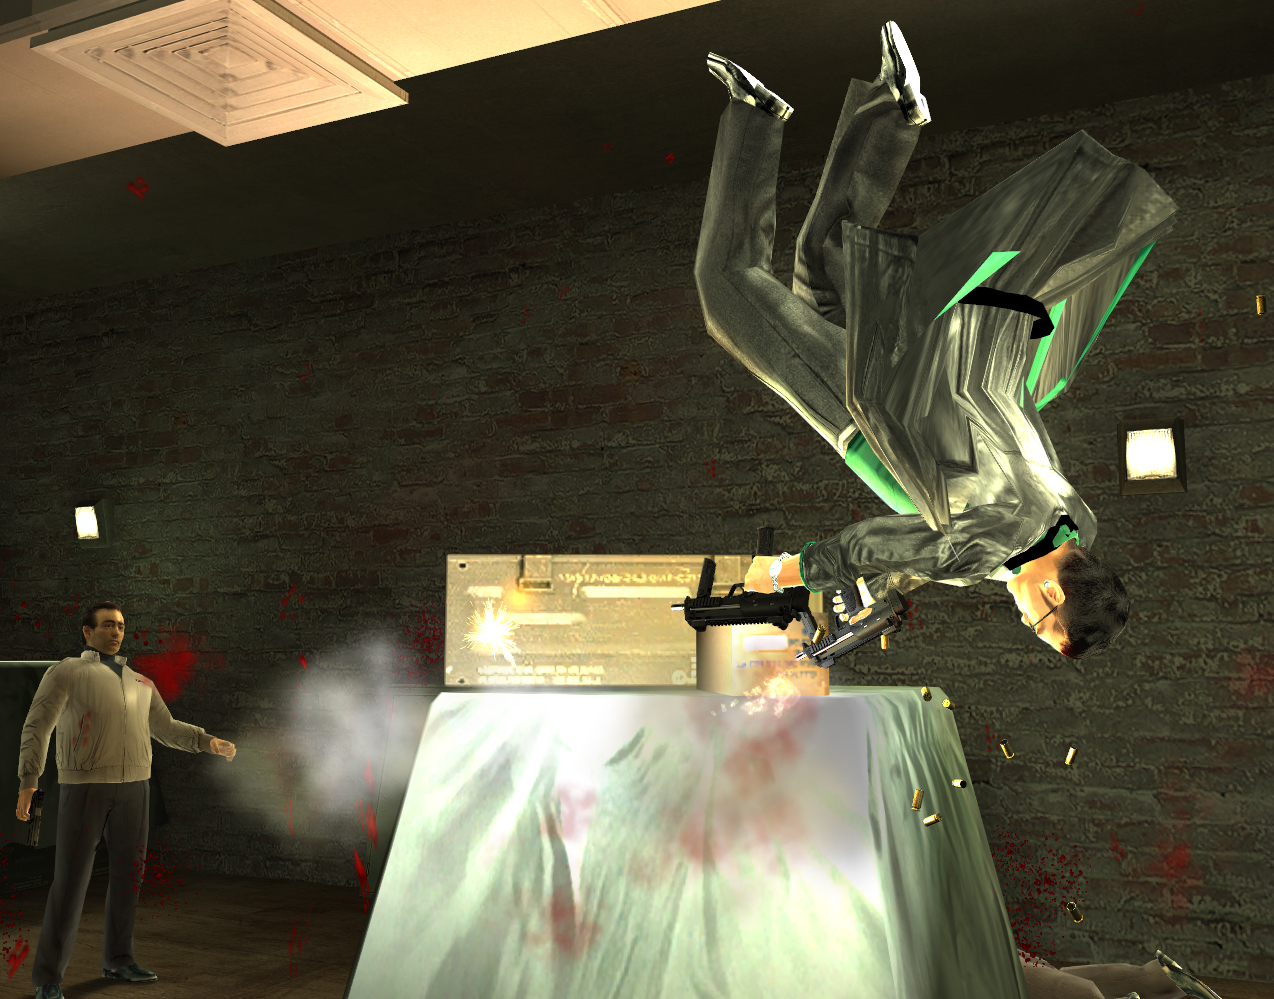 Max payne 2 payne effects 3 mod free download